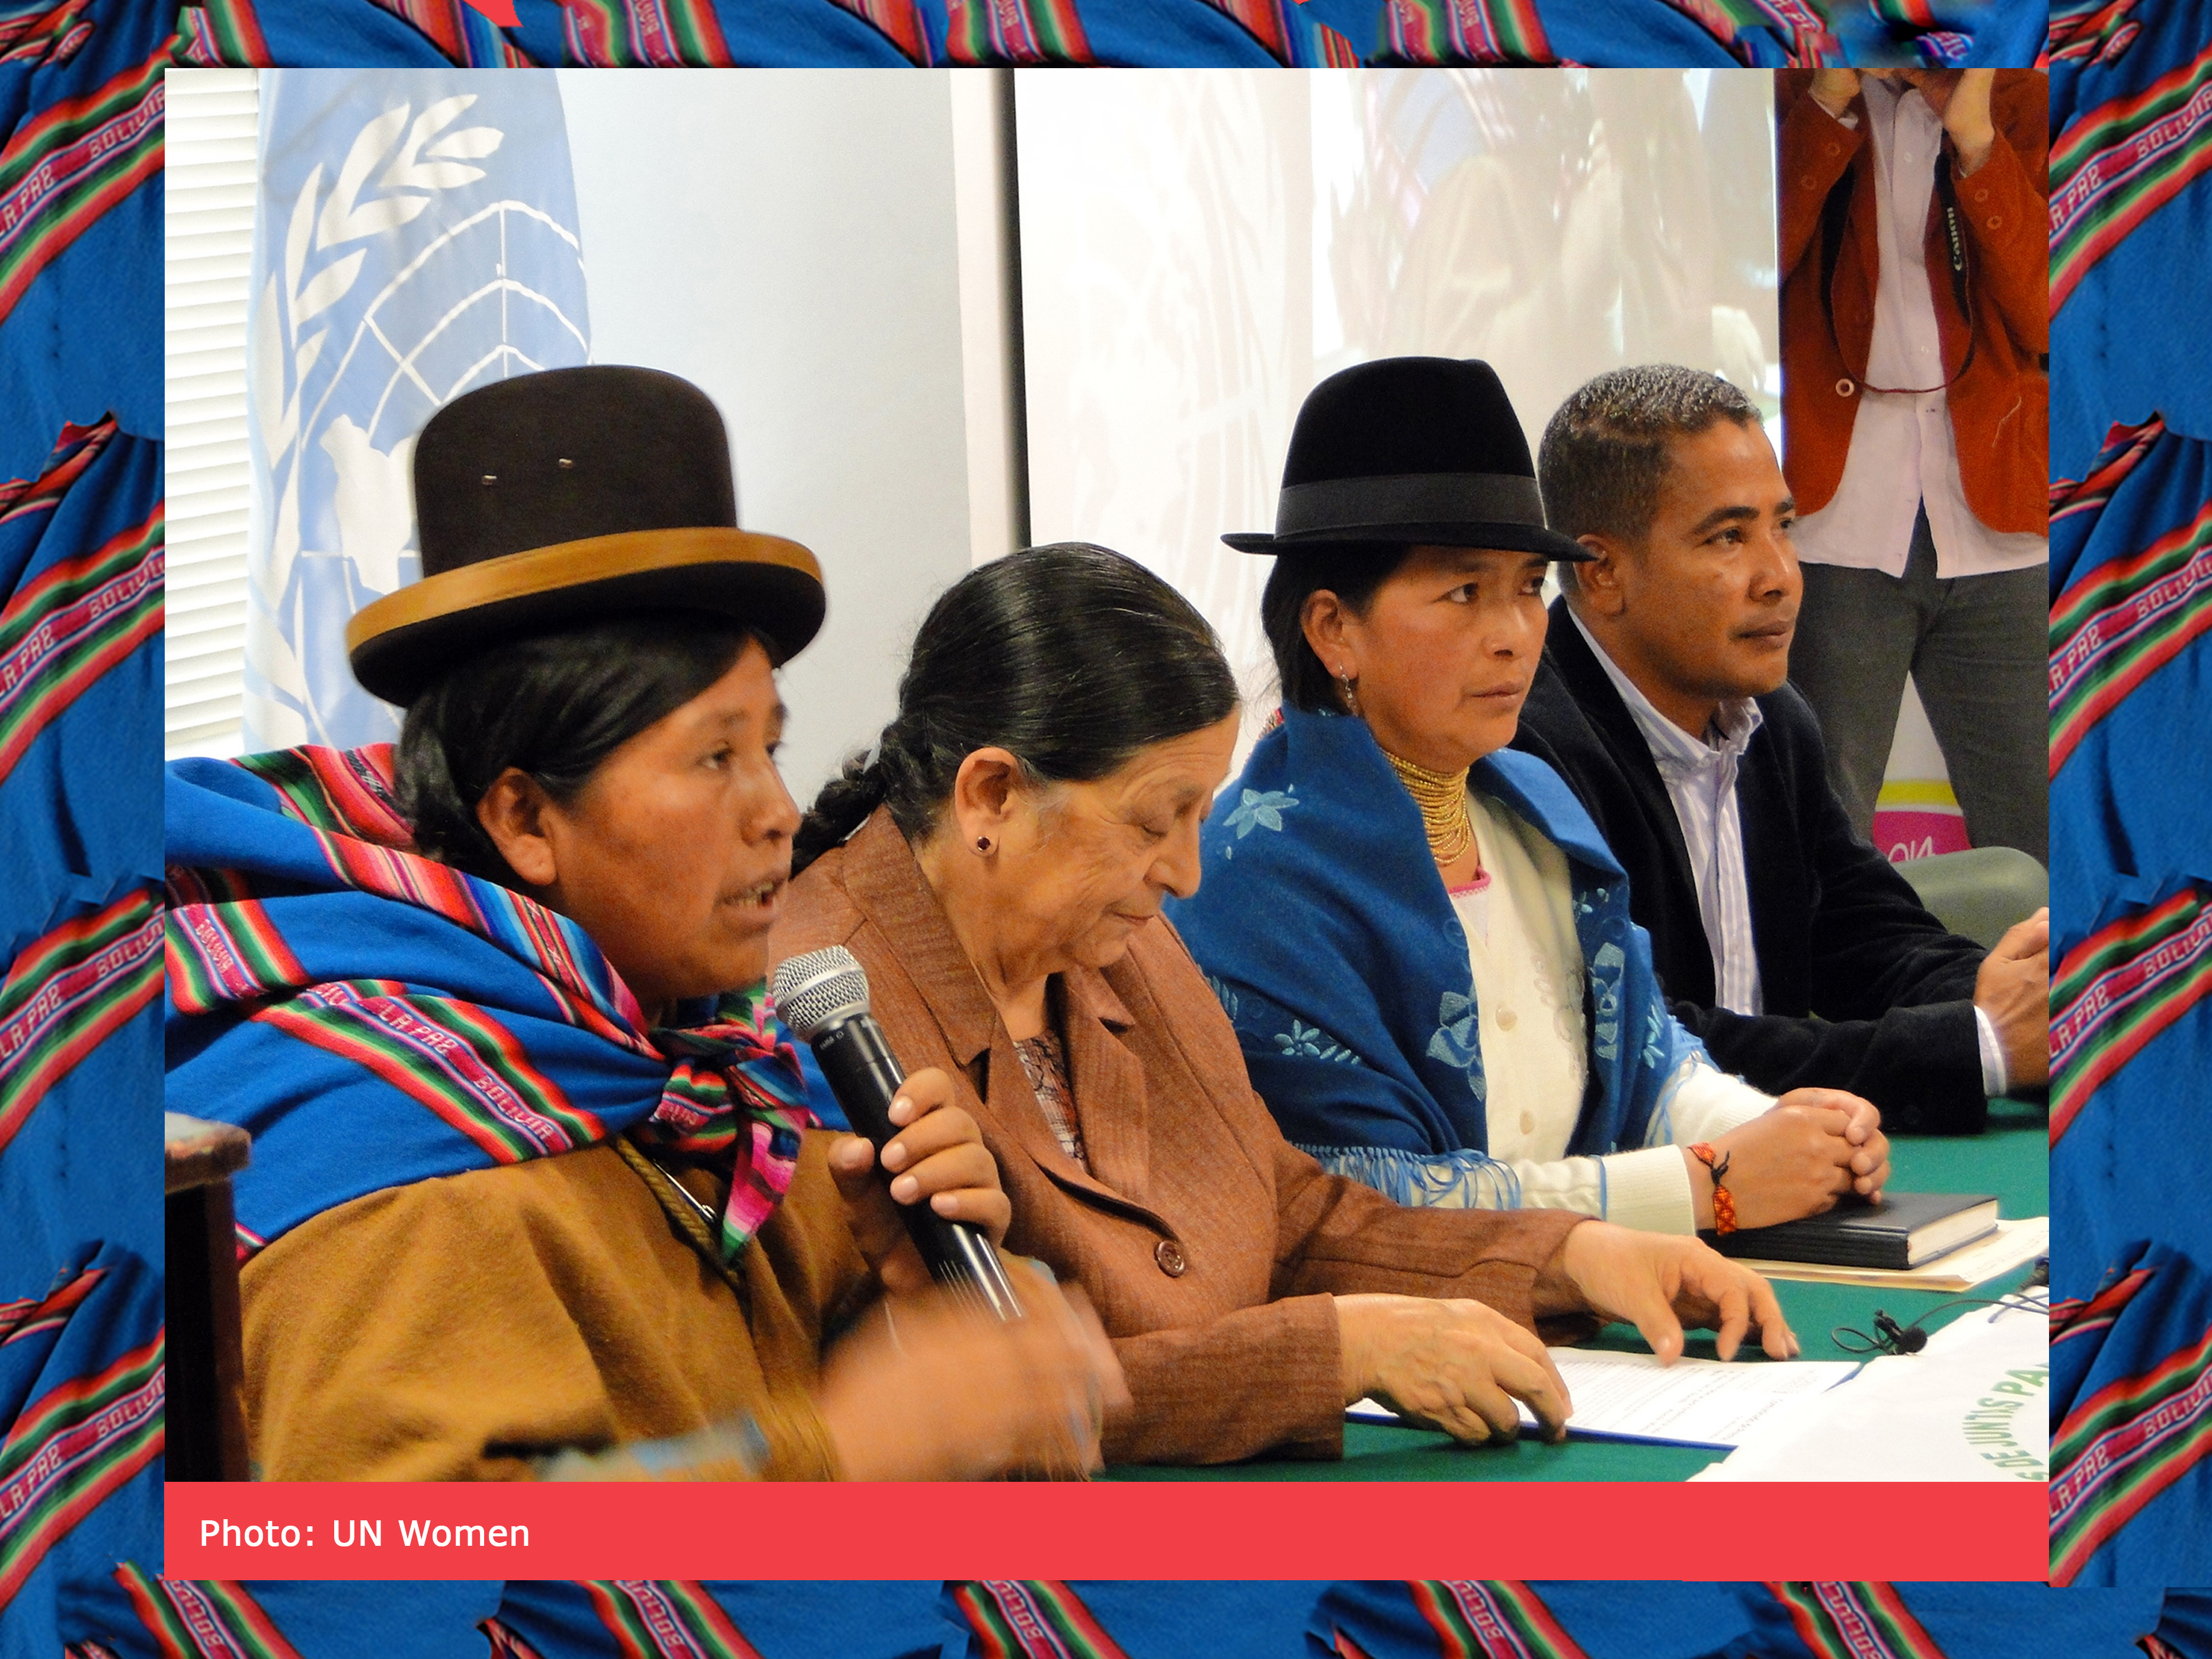 In Quito, rural women activists from Bolivia and Ecuador gathered to articulate their demands, such as better access to land, credit, training and technology.